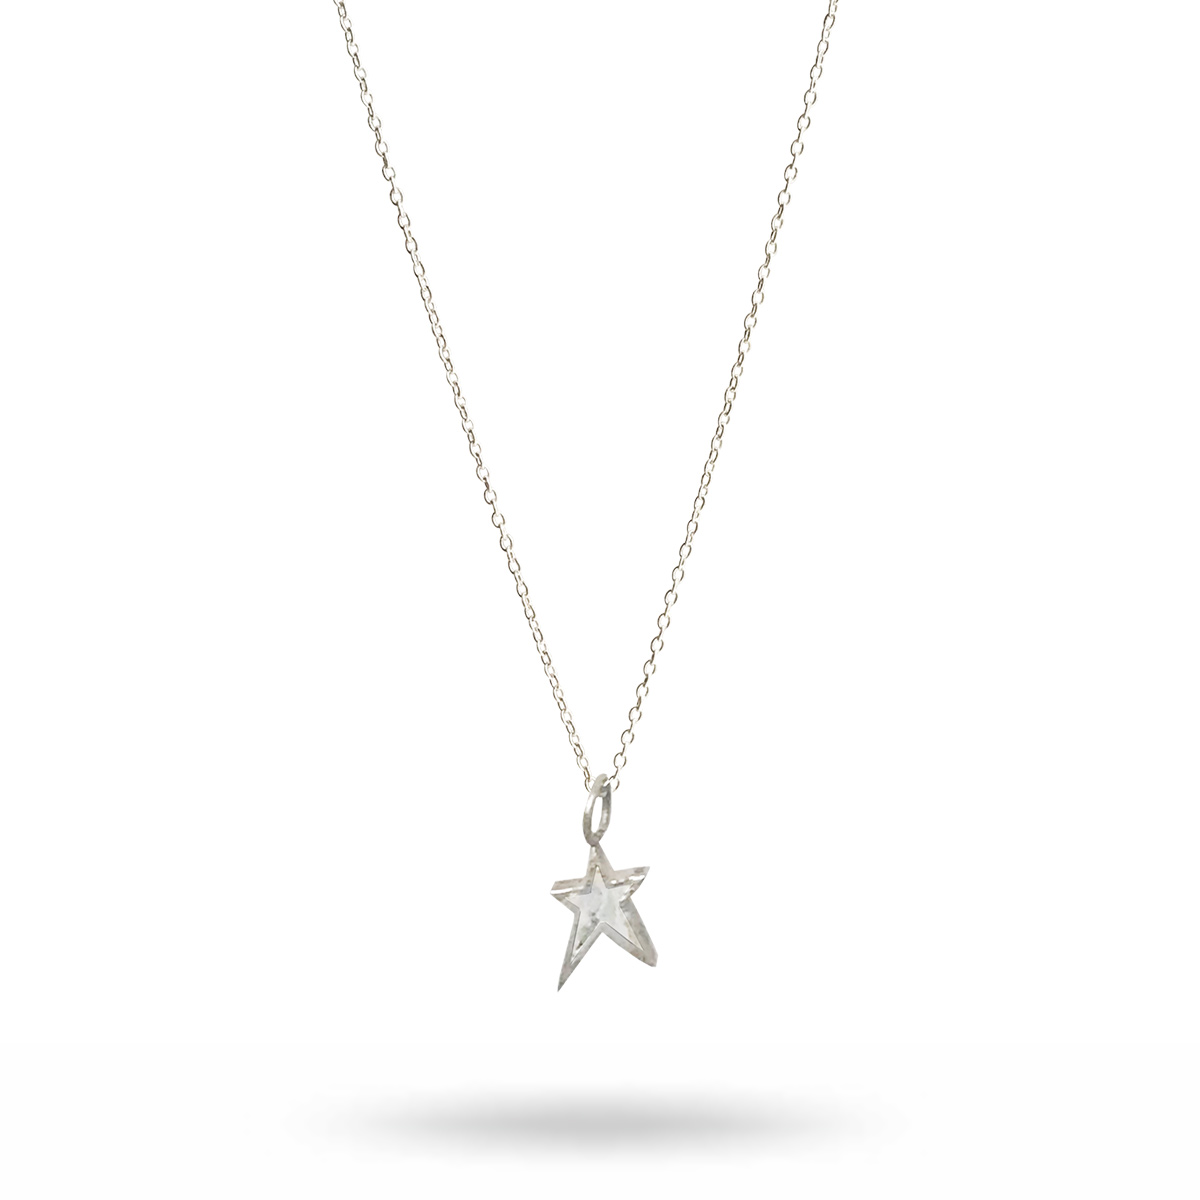 N140525_Star_necklace_silver_2112x2112